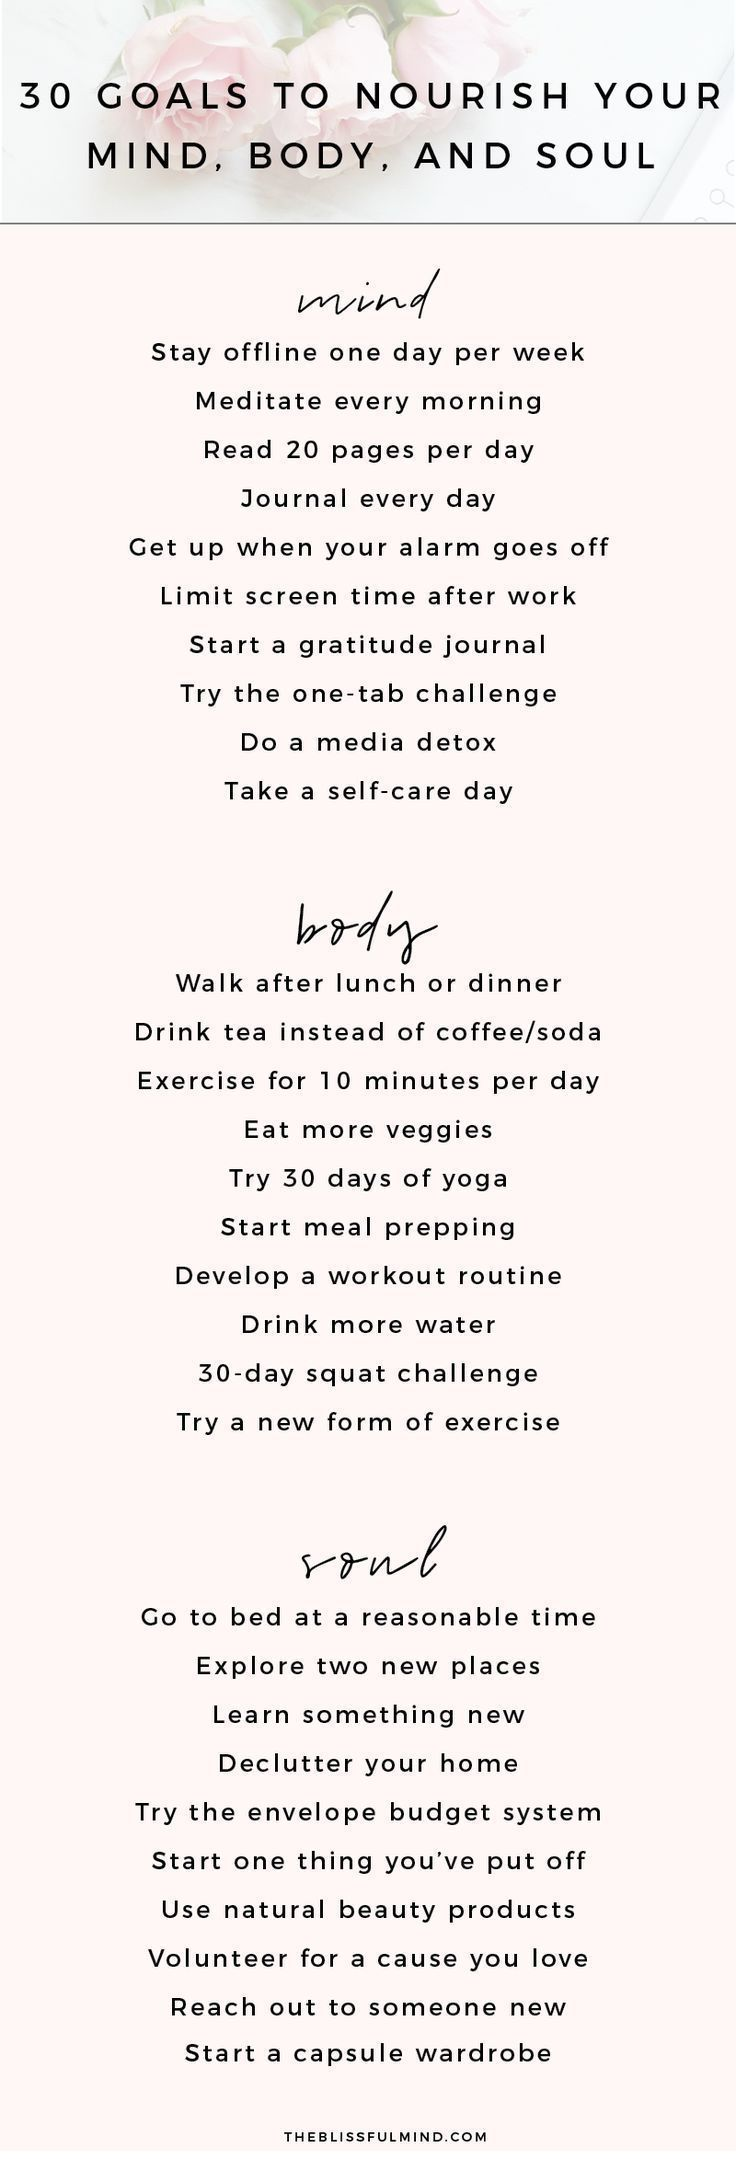 30 Goal Ideas To Nourish Your Mind, Body, and Soul